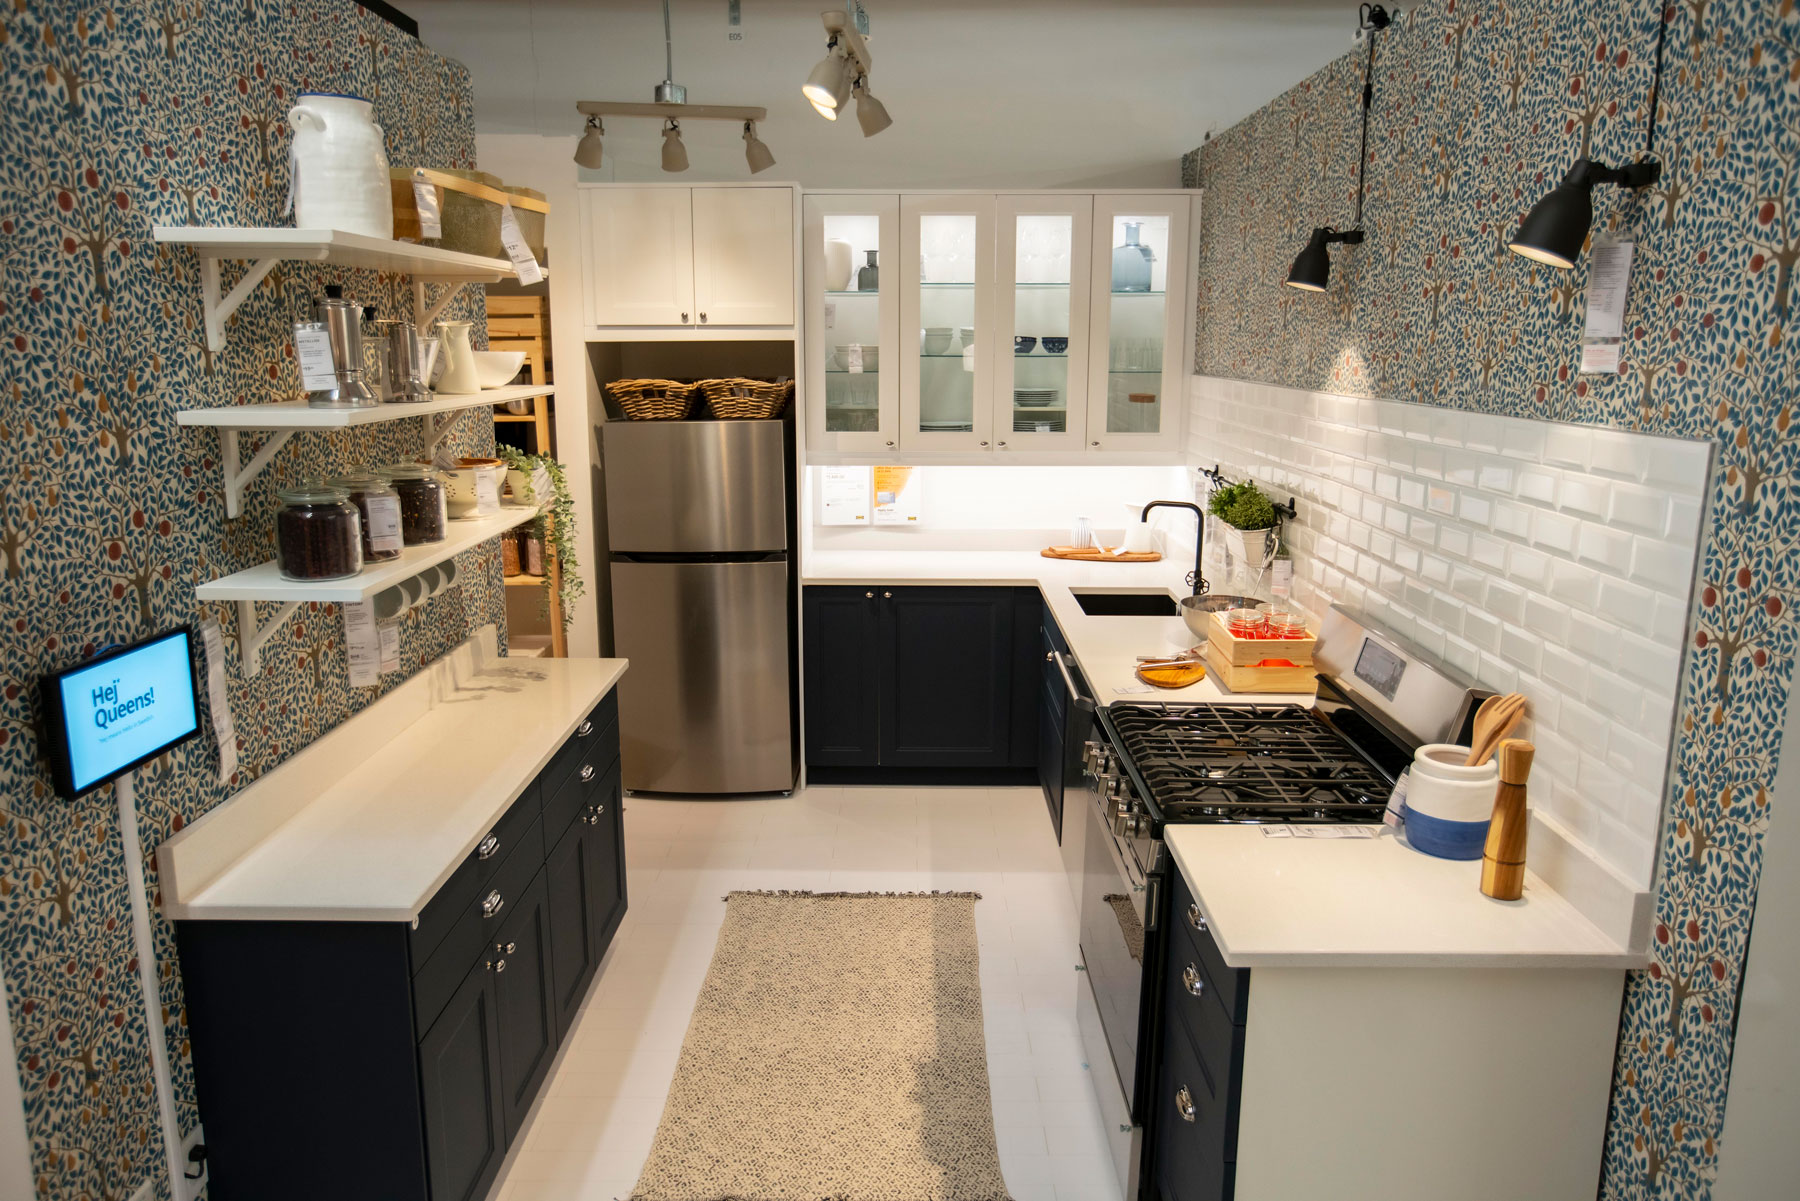 IKEA queens small store - kitchen